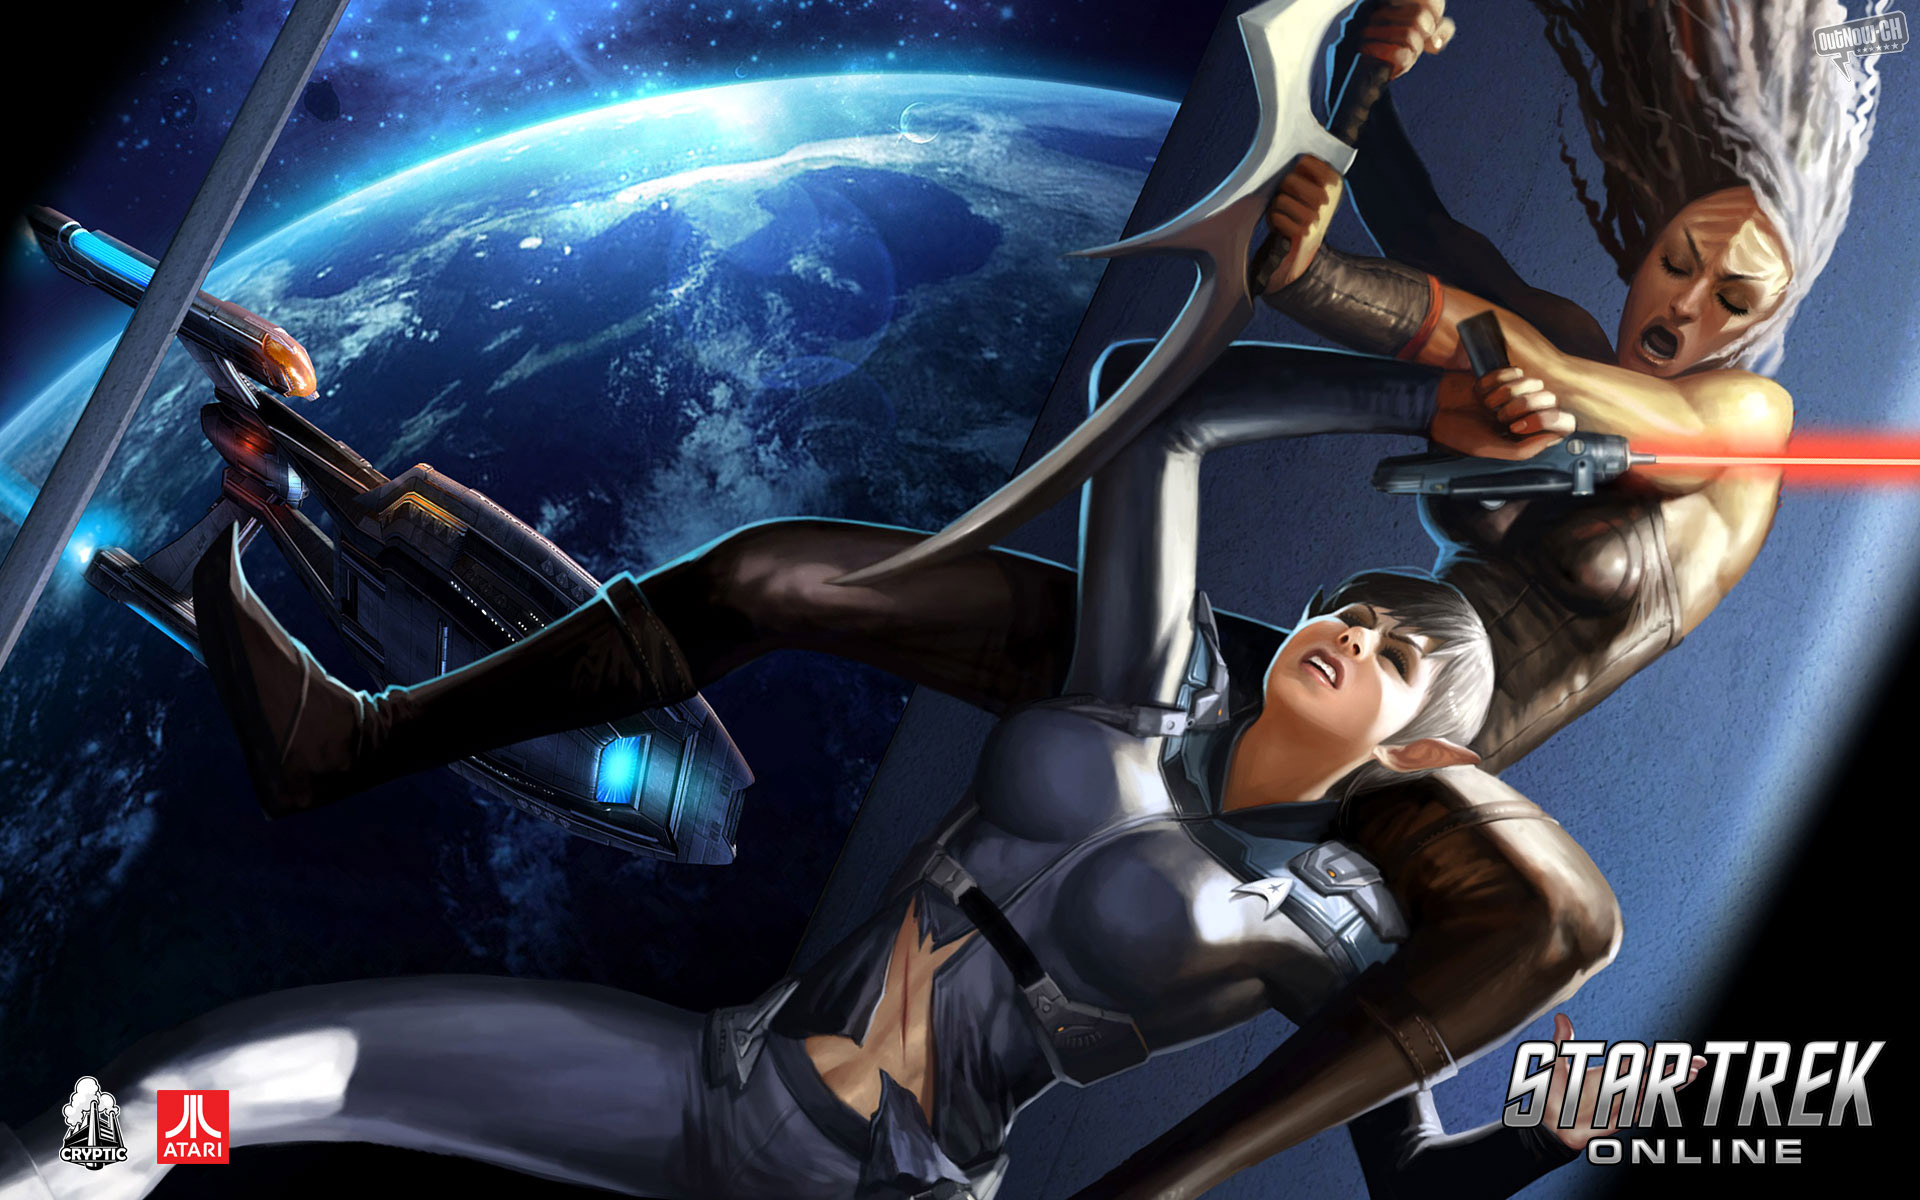 Image Star Trek Online Wallpapers And Stock Photos